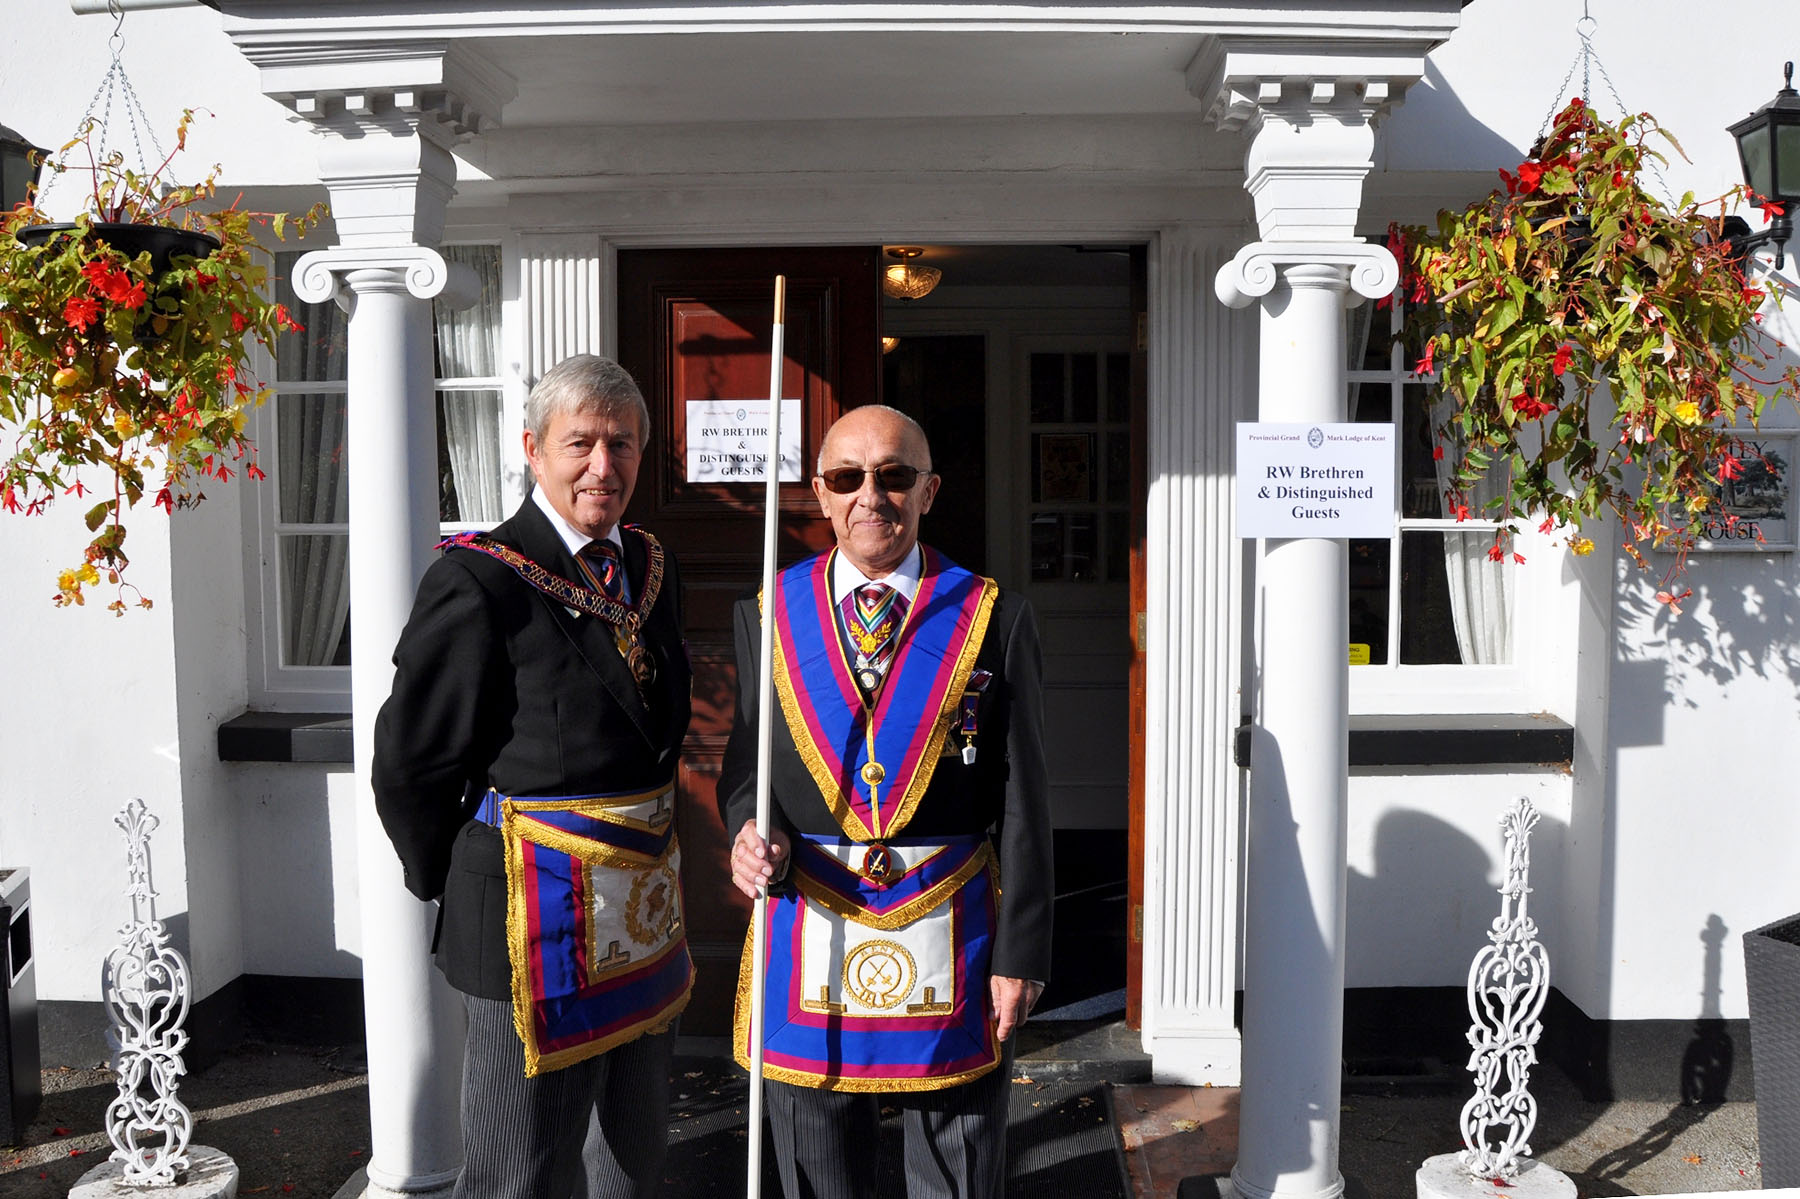 A Visit to the Provincial Grand Lodge of Mark Master Masons of Kent